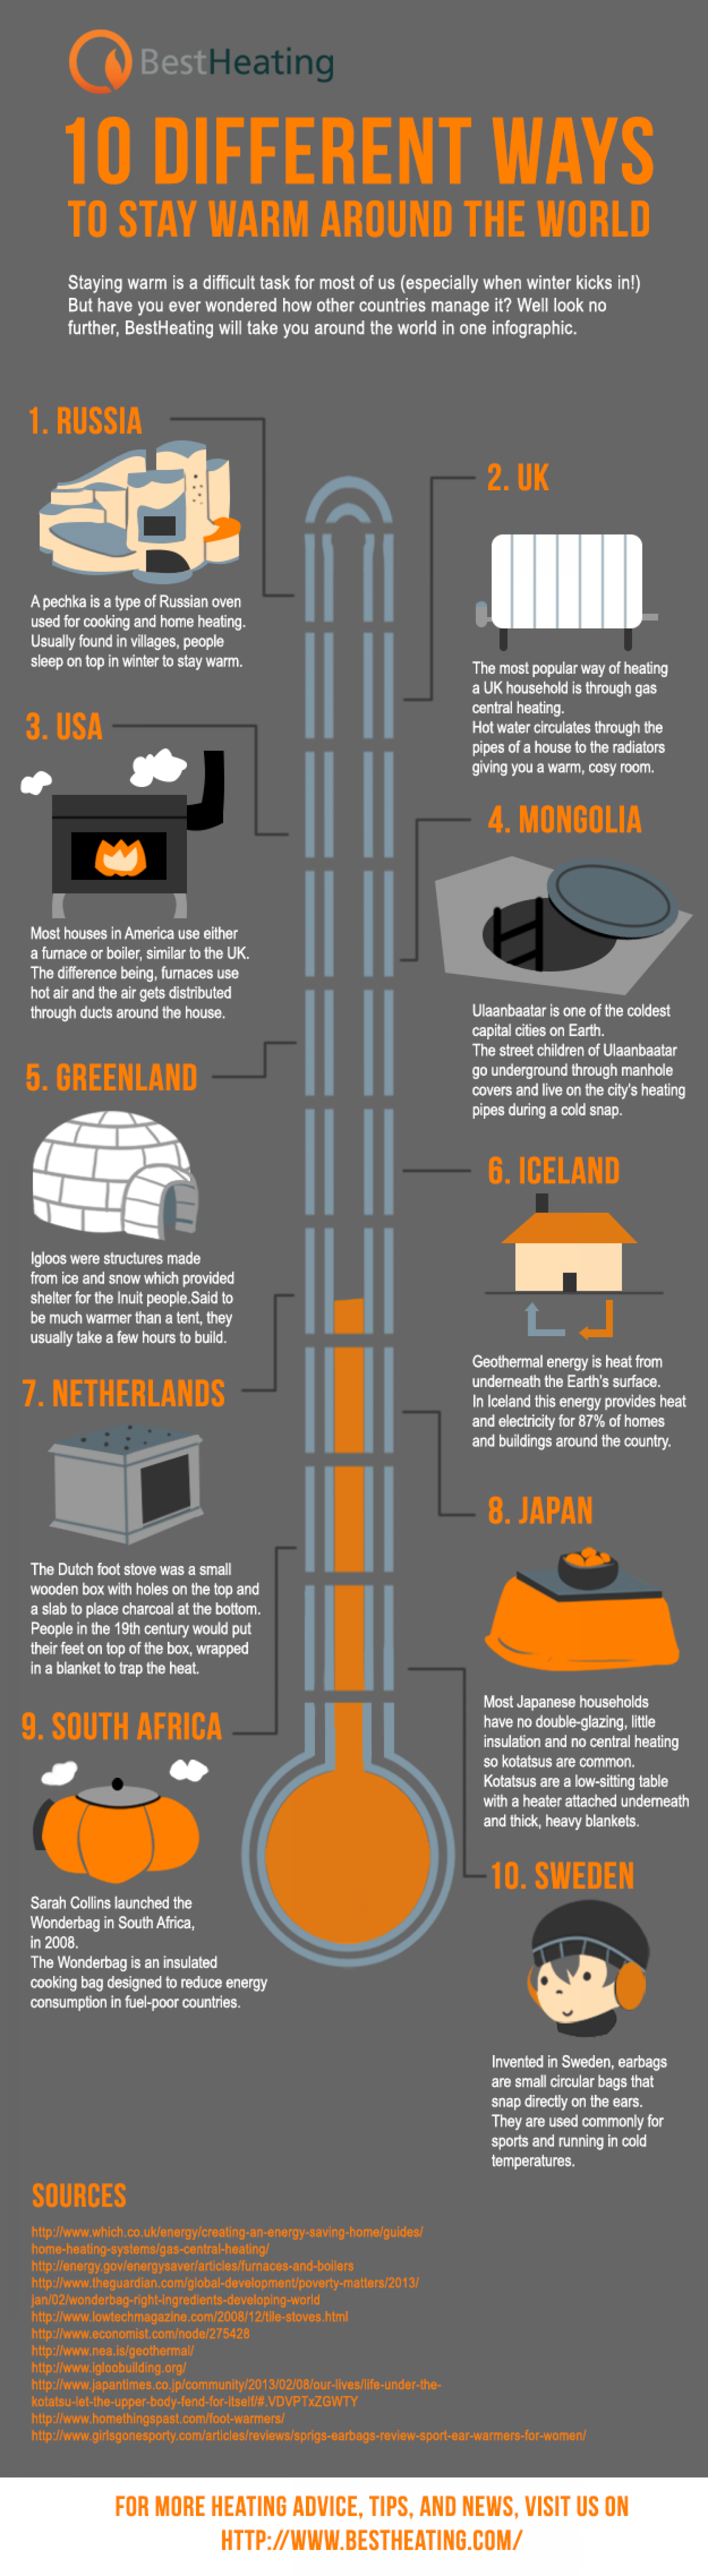 10 Different Ways to Stay Warm Around the World Infographic